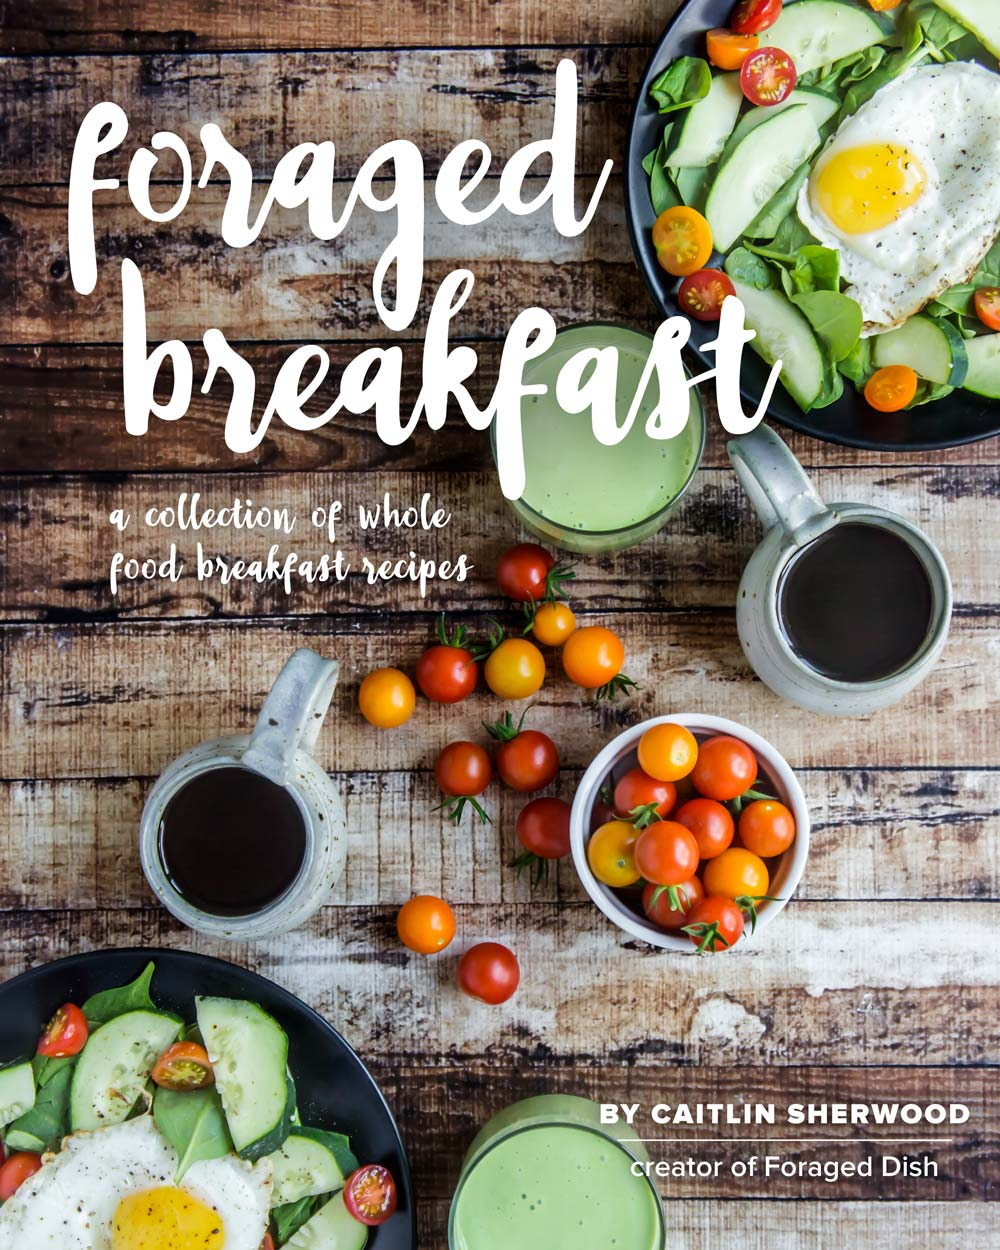 Foraged Breakfast eCookbook